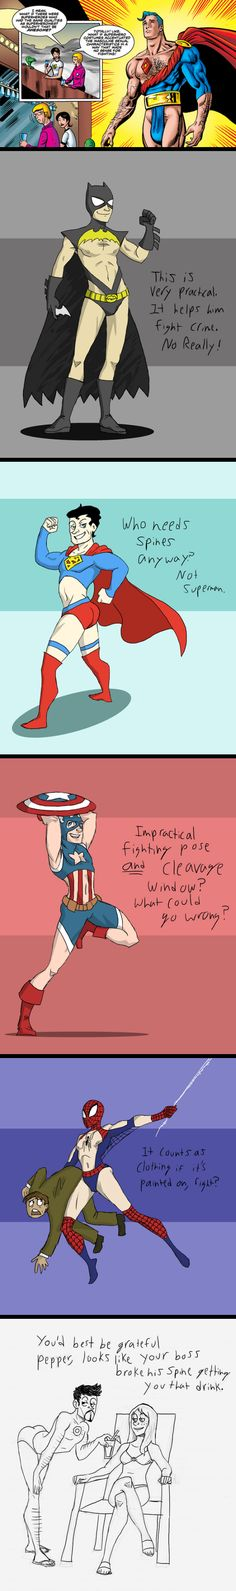 Superhero costumes // funny pictures - funny photos - funny images - funny pics - funny quotes - #lol #humor #funnypictures